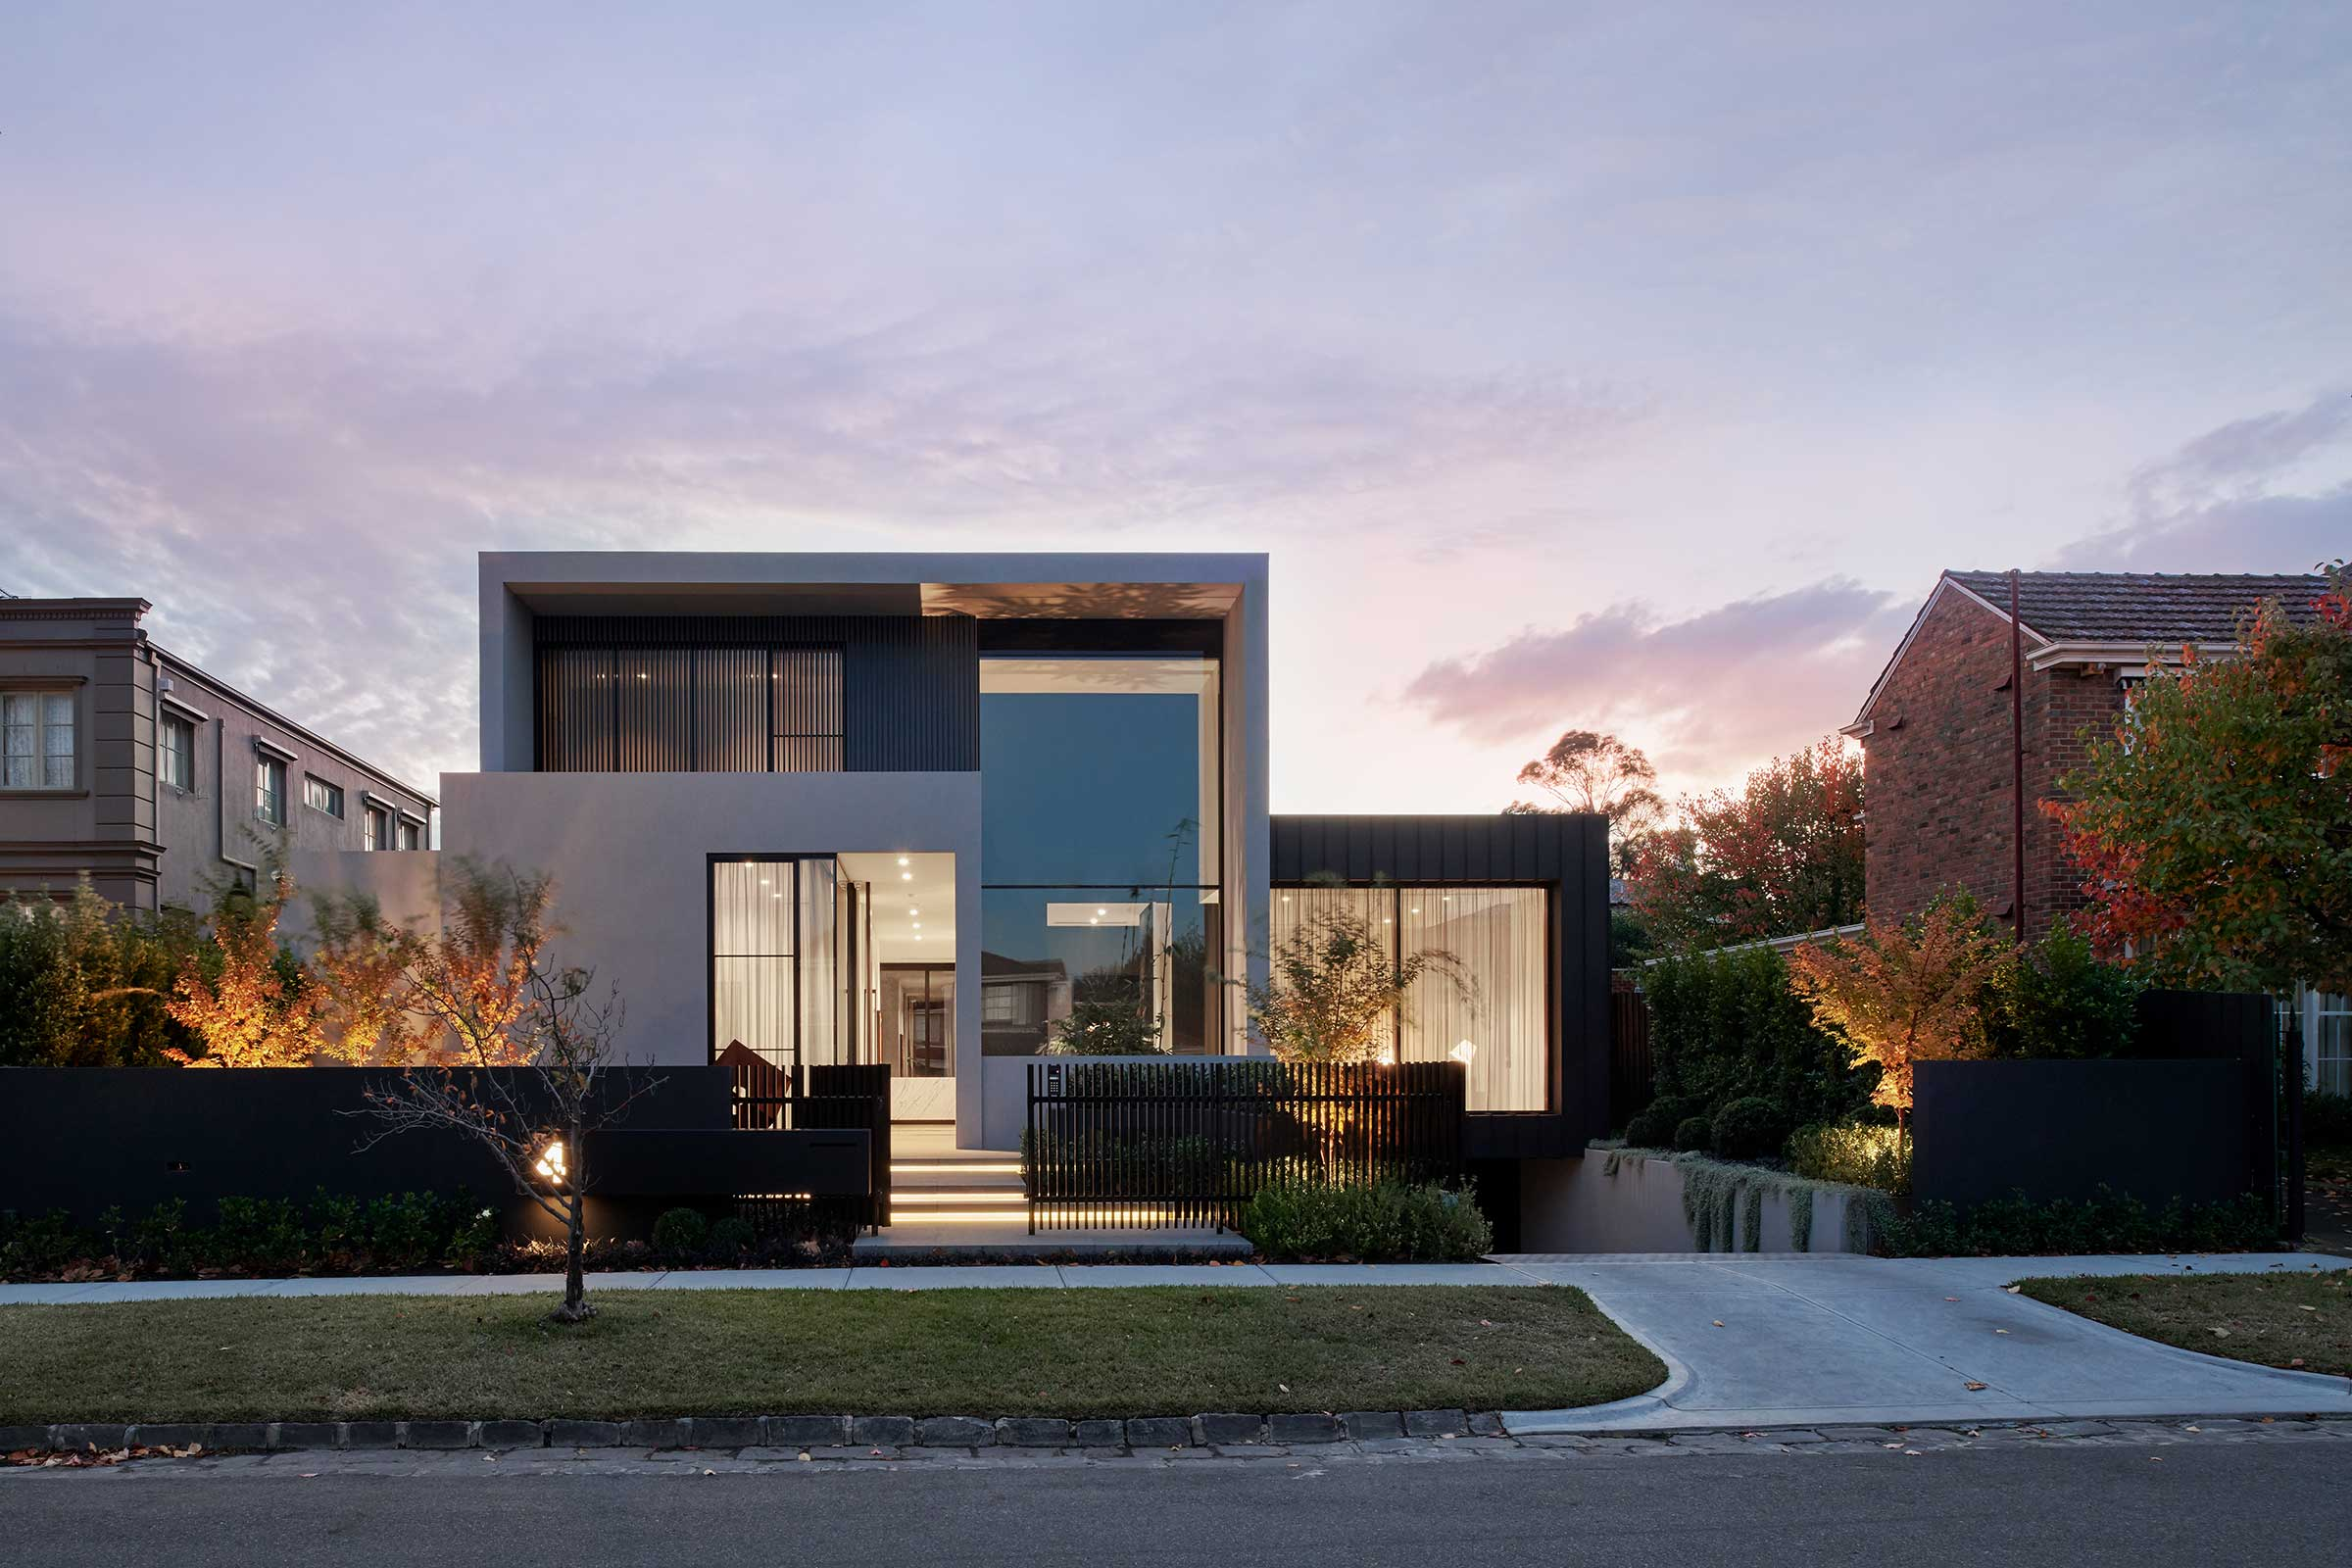 36_taouk_architects_bramley_court_veeral_7052_edit_p_closed.jpg